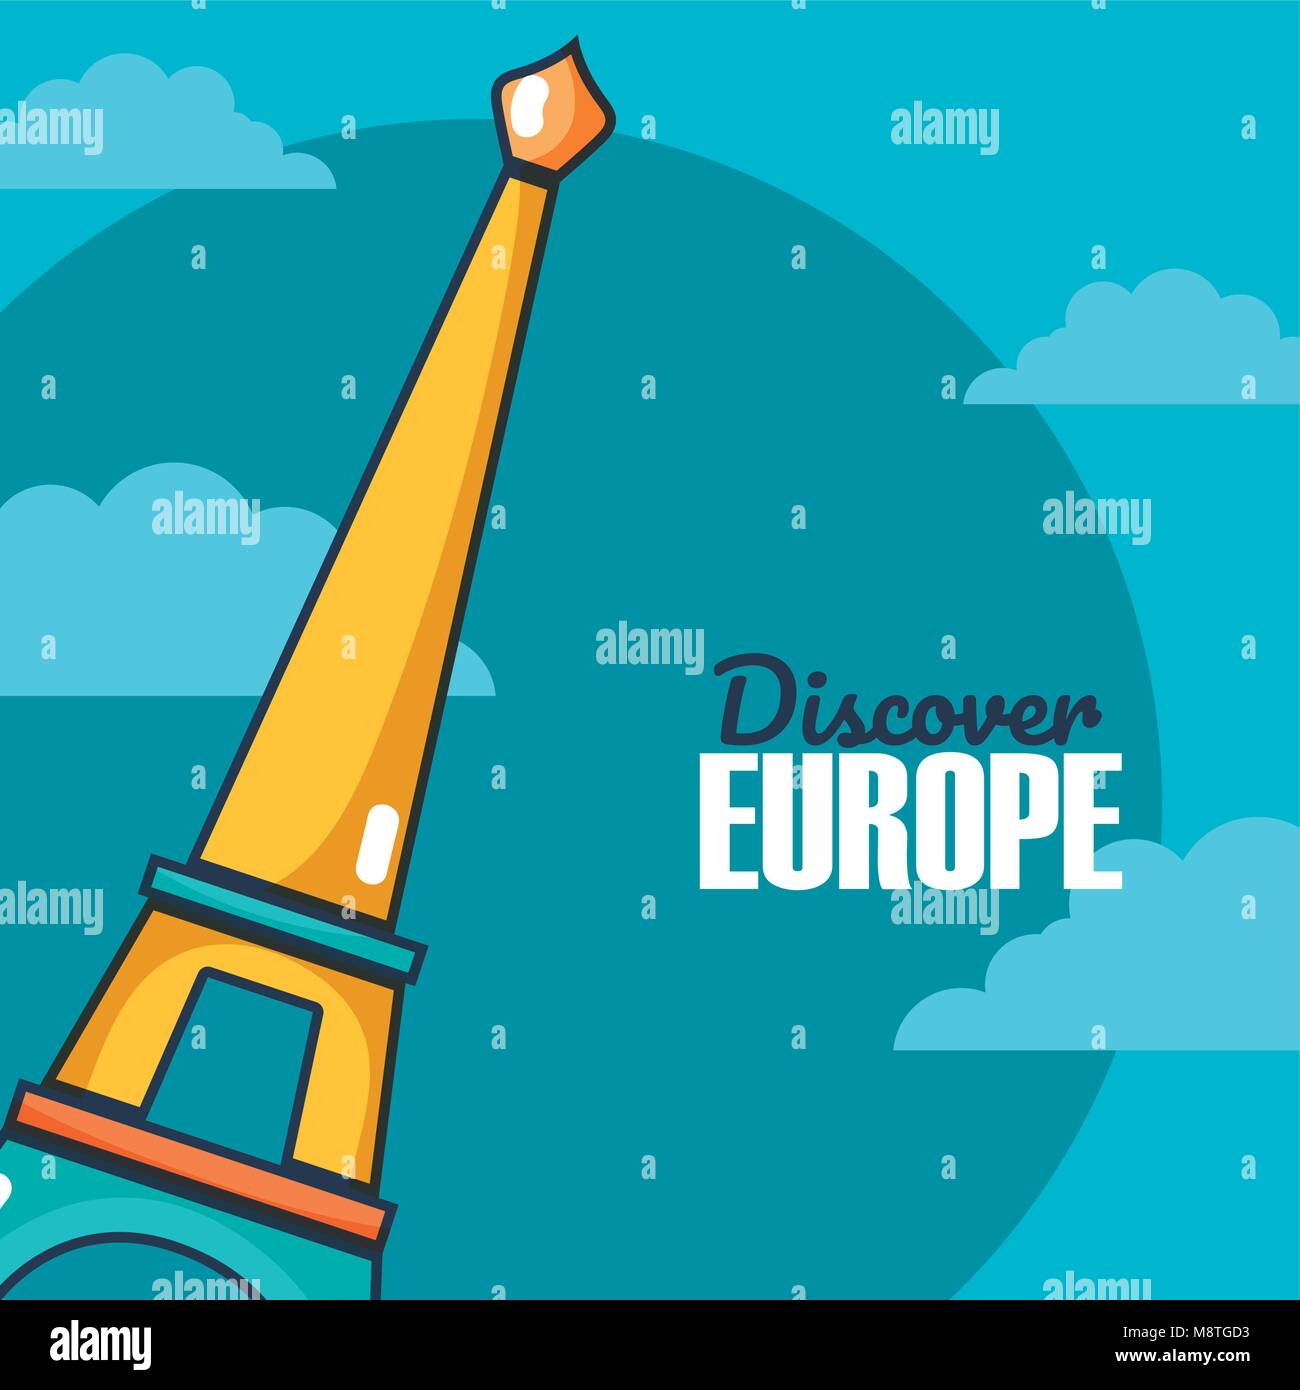 Travel and discover europe card over sky background - Stock Image